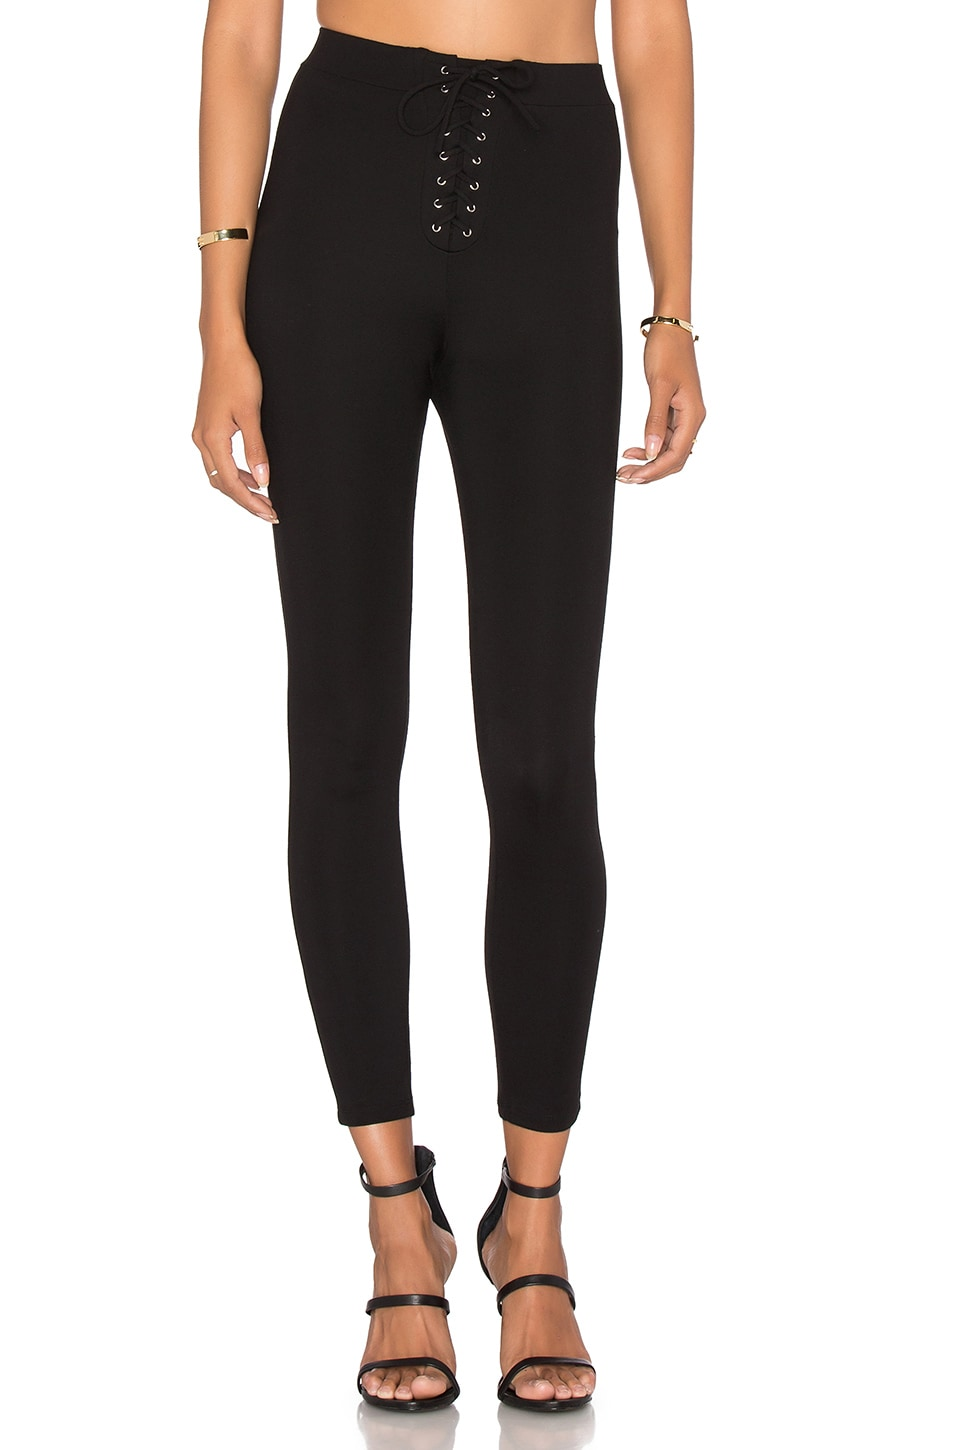 LPA Pants 26 in Black